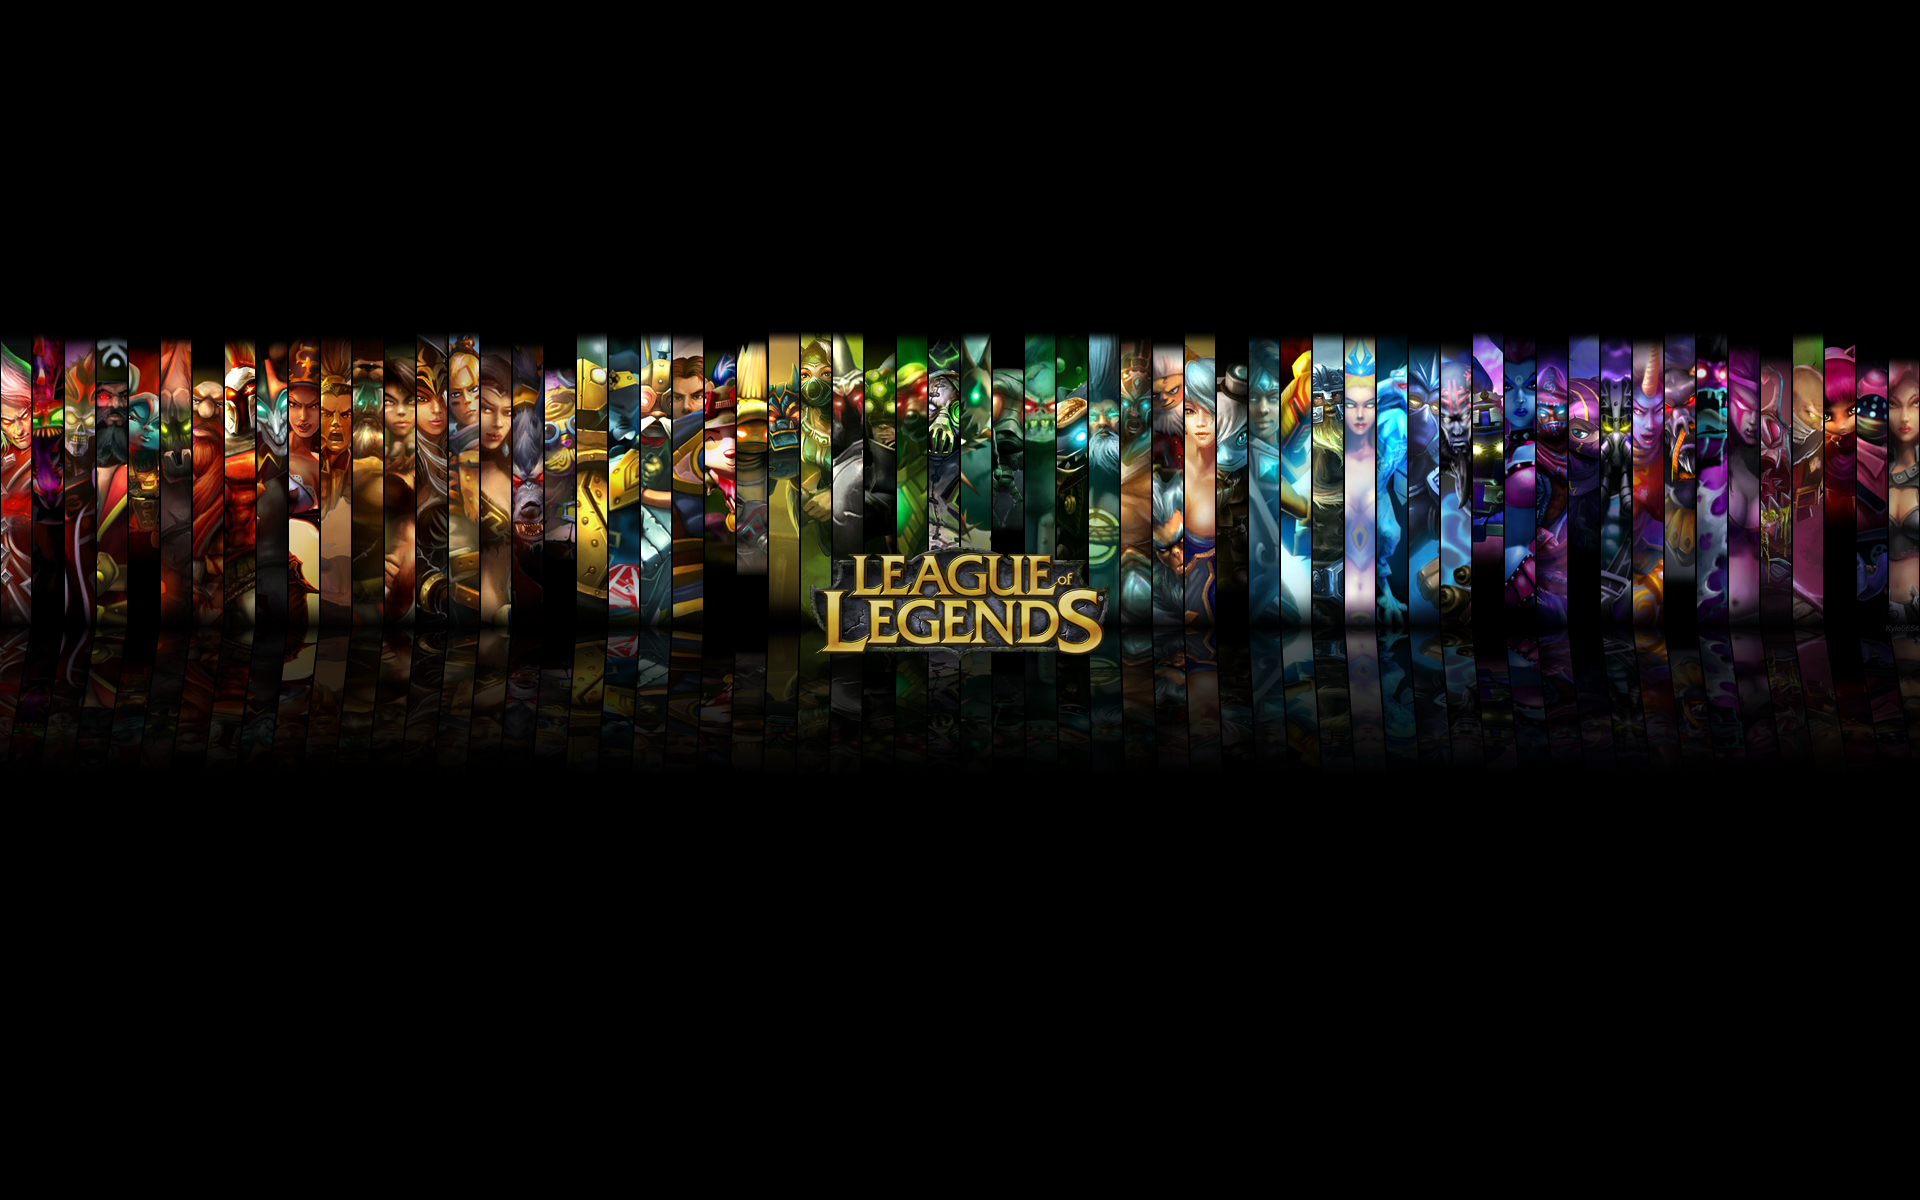 Free Download League Of Legends Images League Of Legends Hd